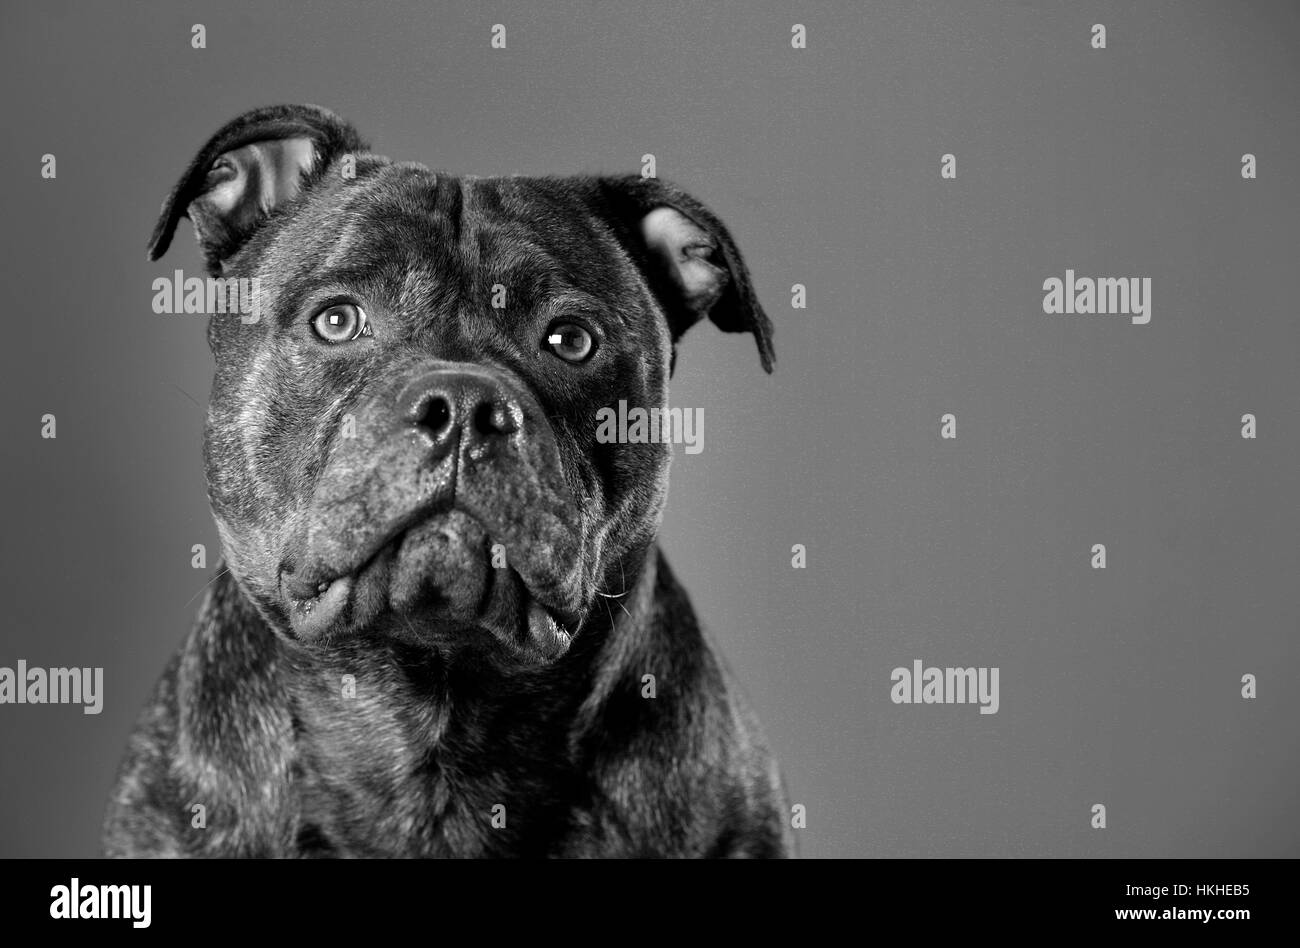 Staffordshire Bull Terrier portrait in studio - Stock Image